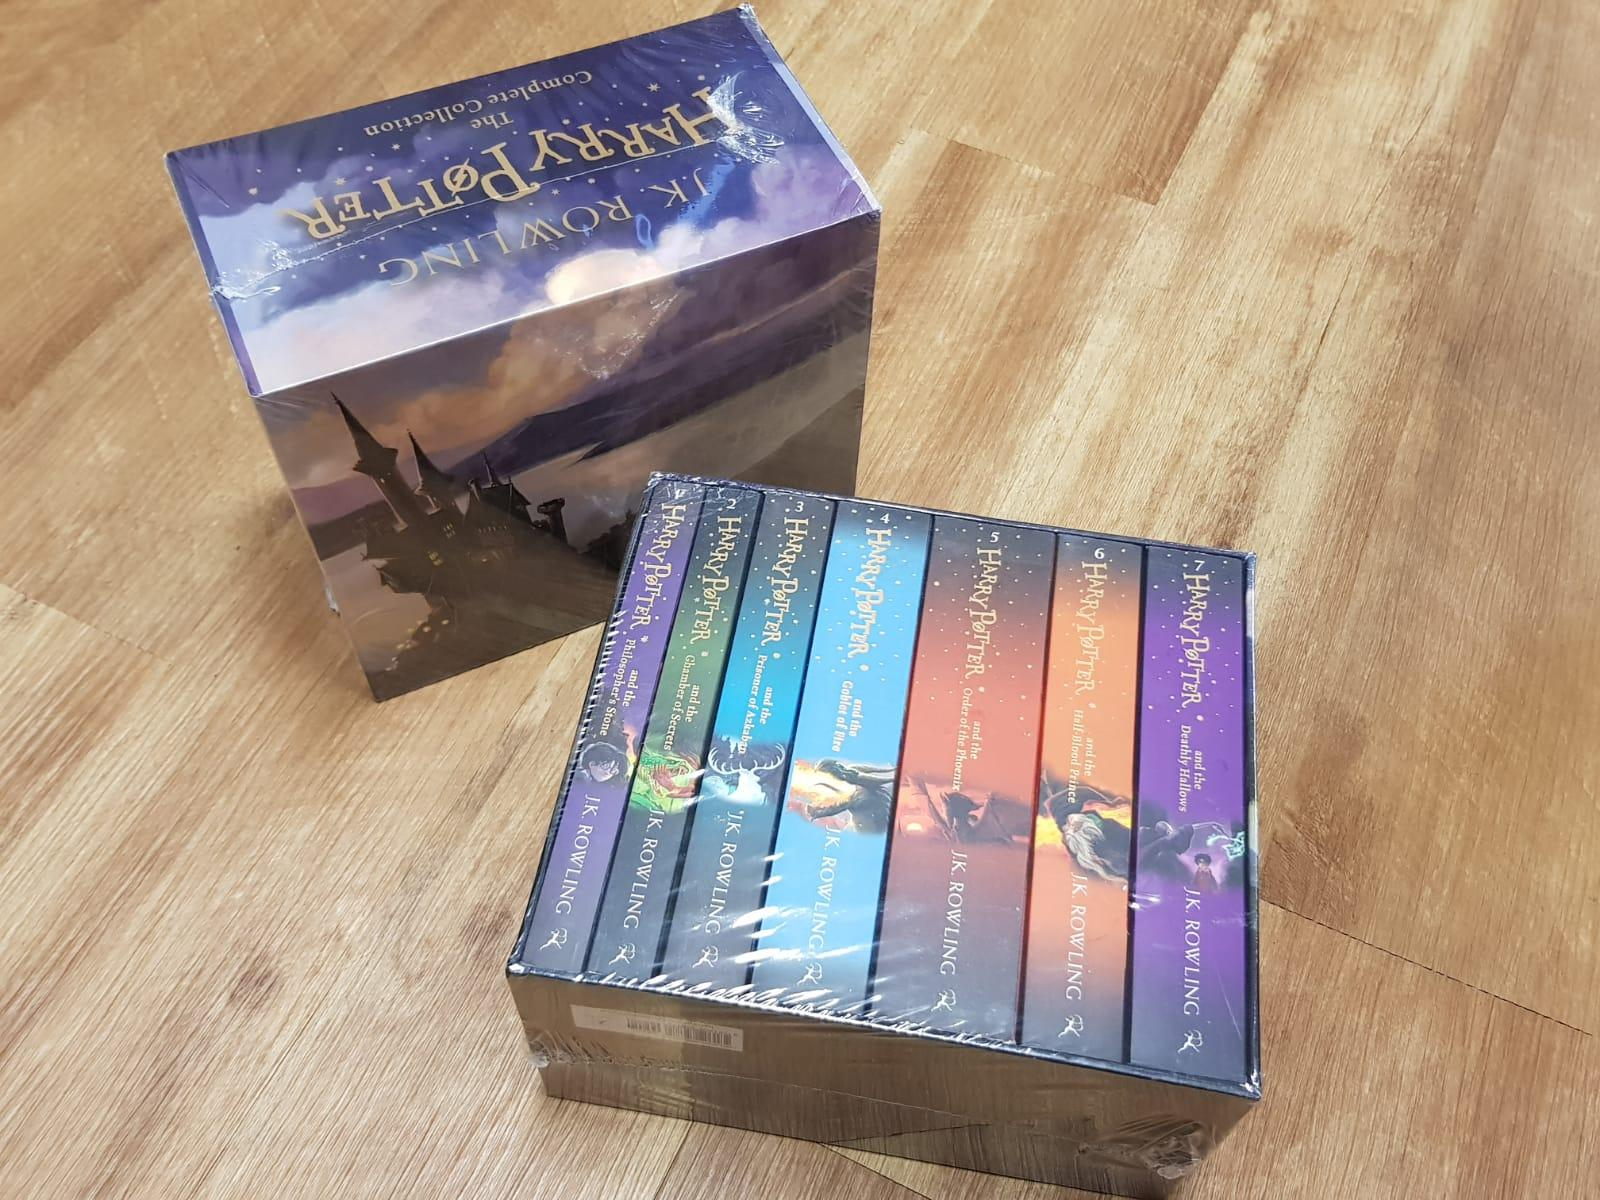 Harry Potter Box Set - The Complete Collection (7 Books) -  J.K. Rowling